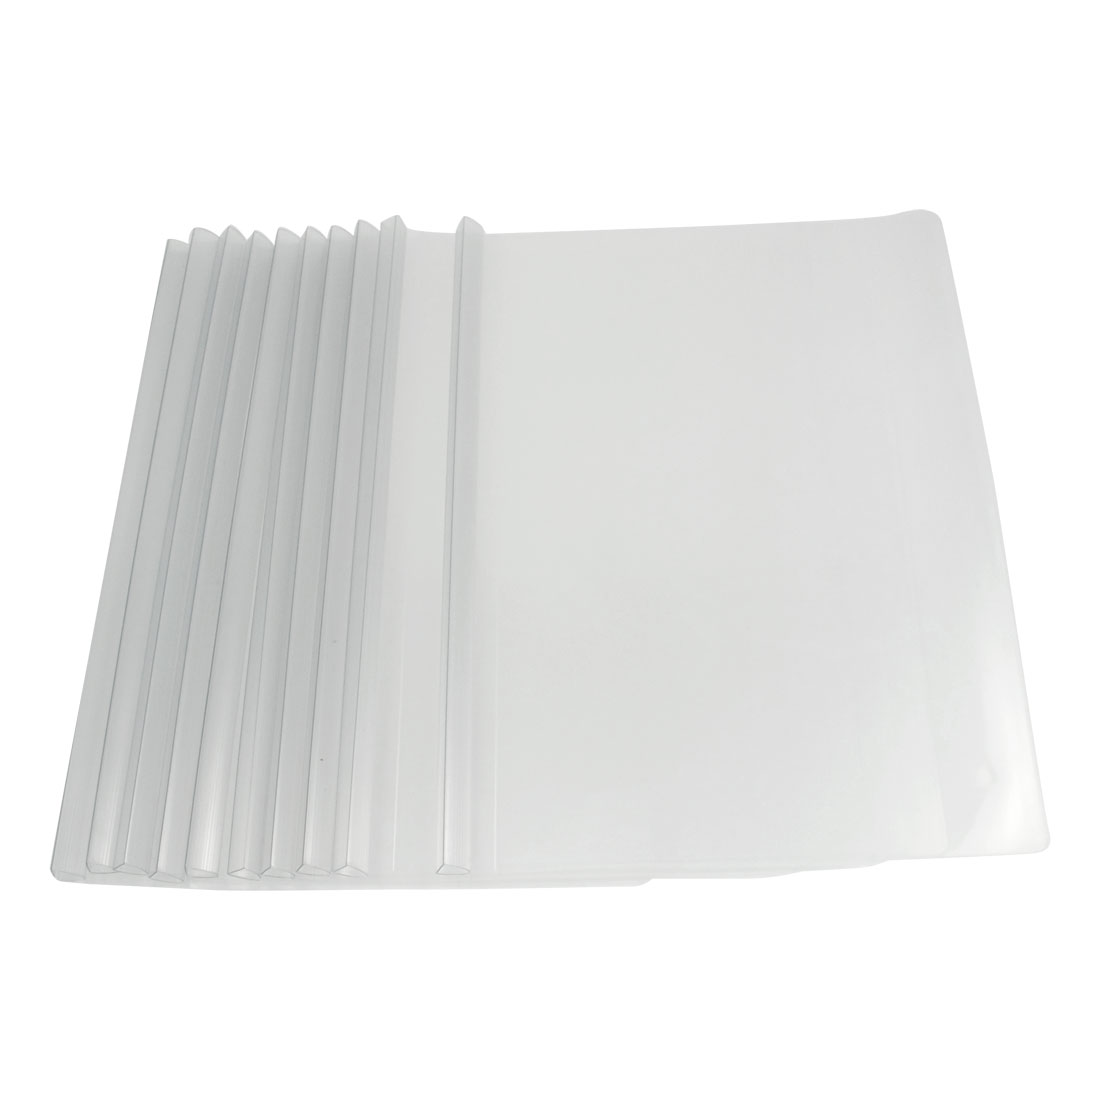 10 Pcs Plastic Clear White Sliding Bar File Folder for A4 Paper Report